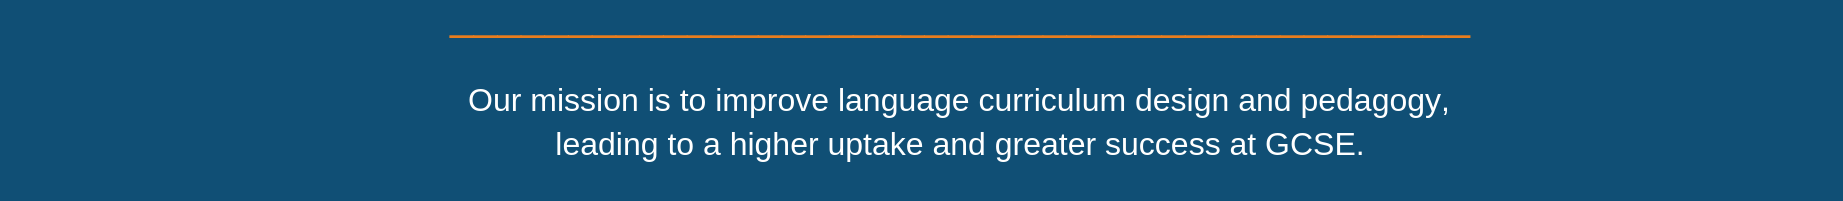 Our mission is to improve language curriculum design and pedagogy, leading to a higher uptake and greater success at GCSE.